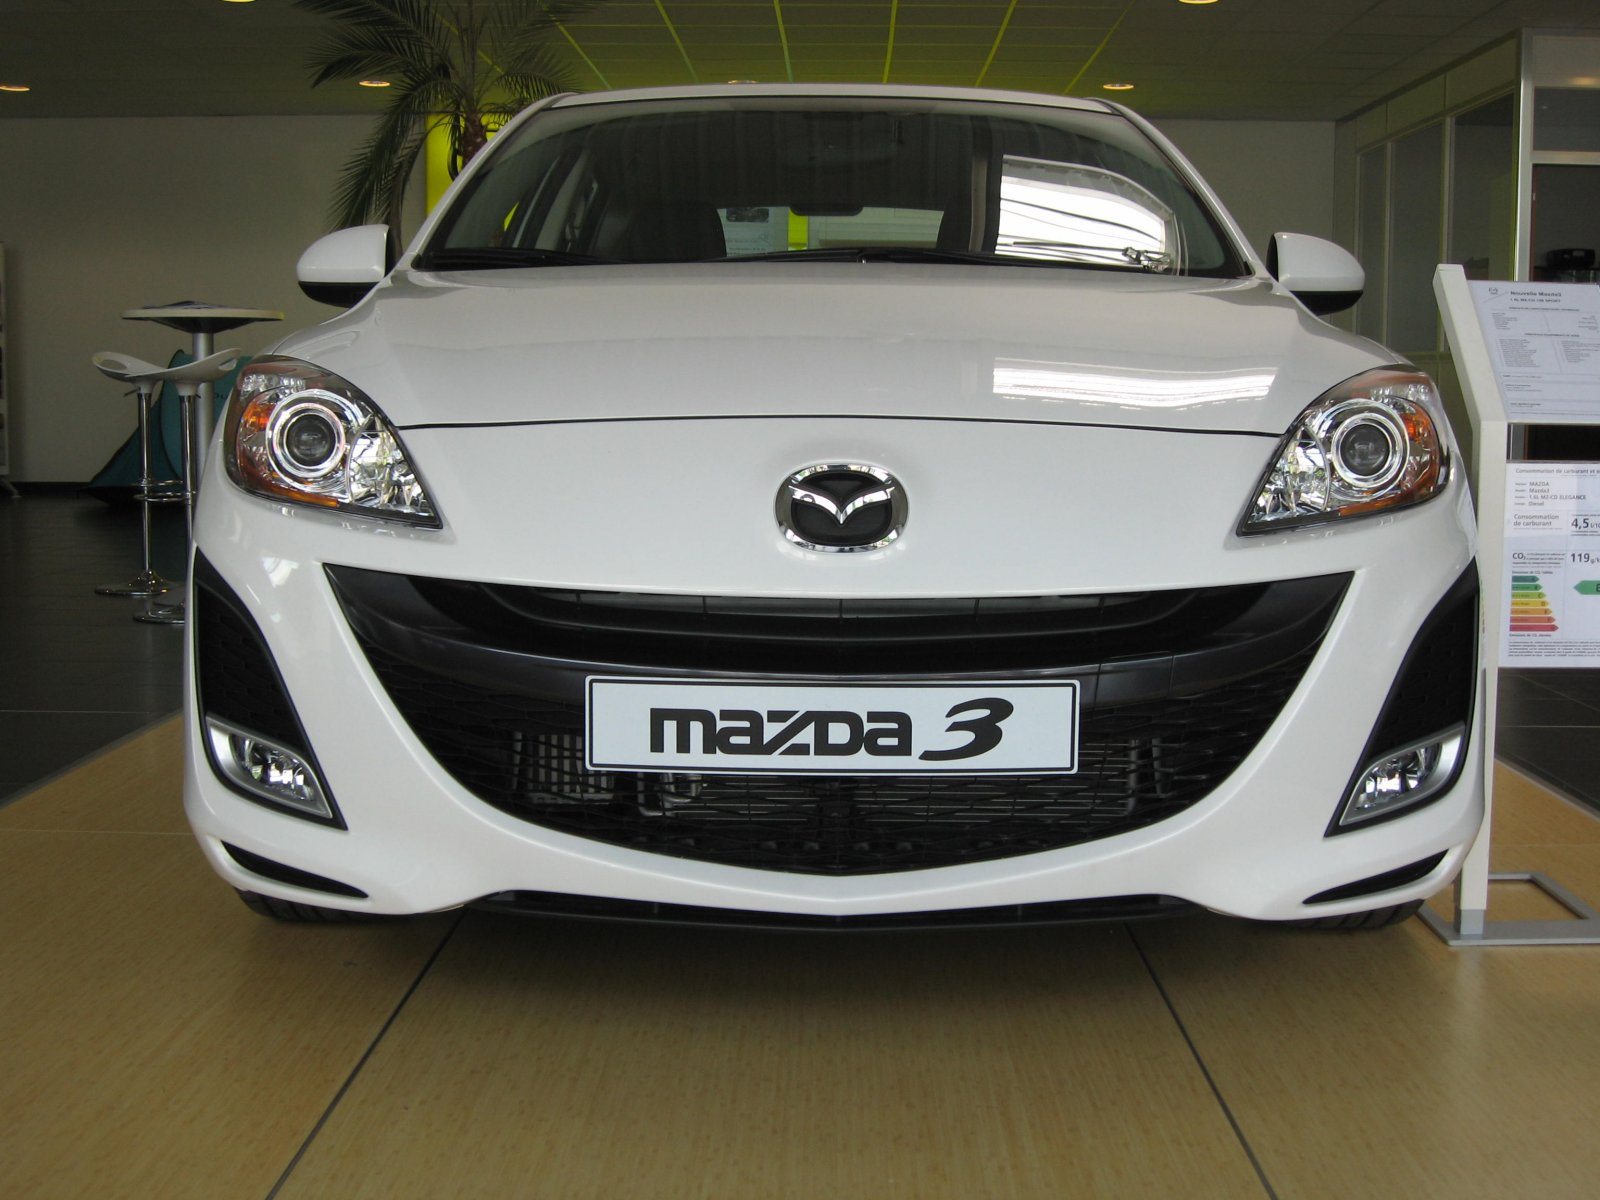 test drive rpt mazda 3 1 6 105ch elegance auto titre. Black Bedroom Furniture Sets. Home Design Ideas